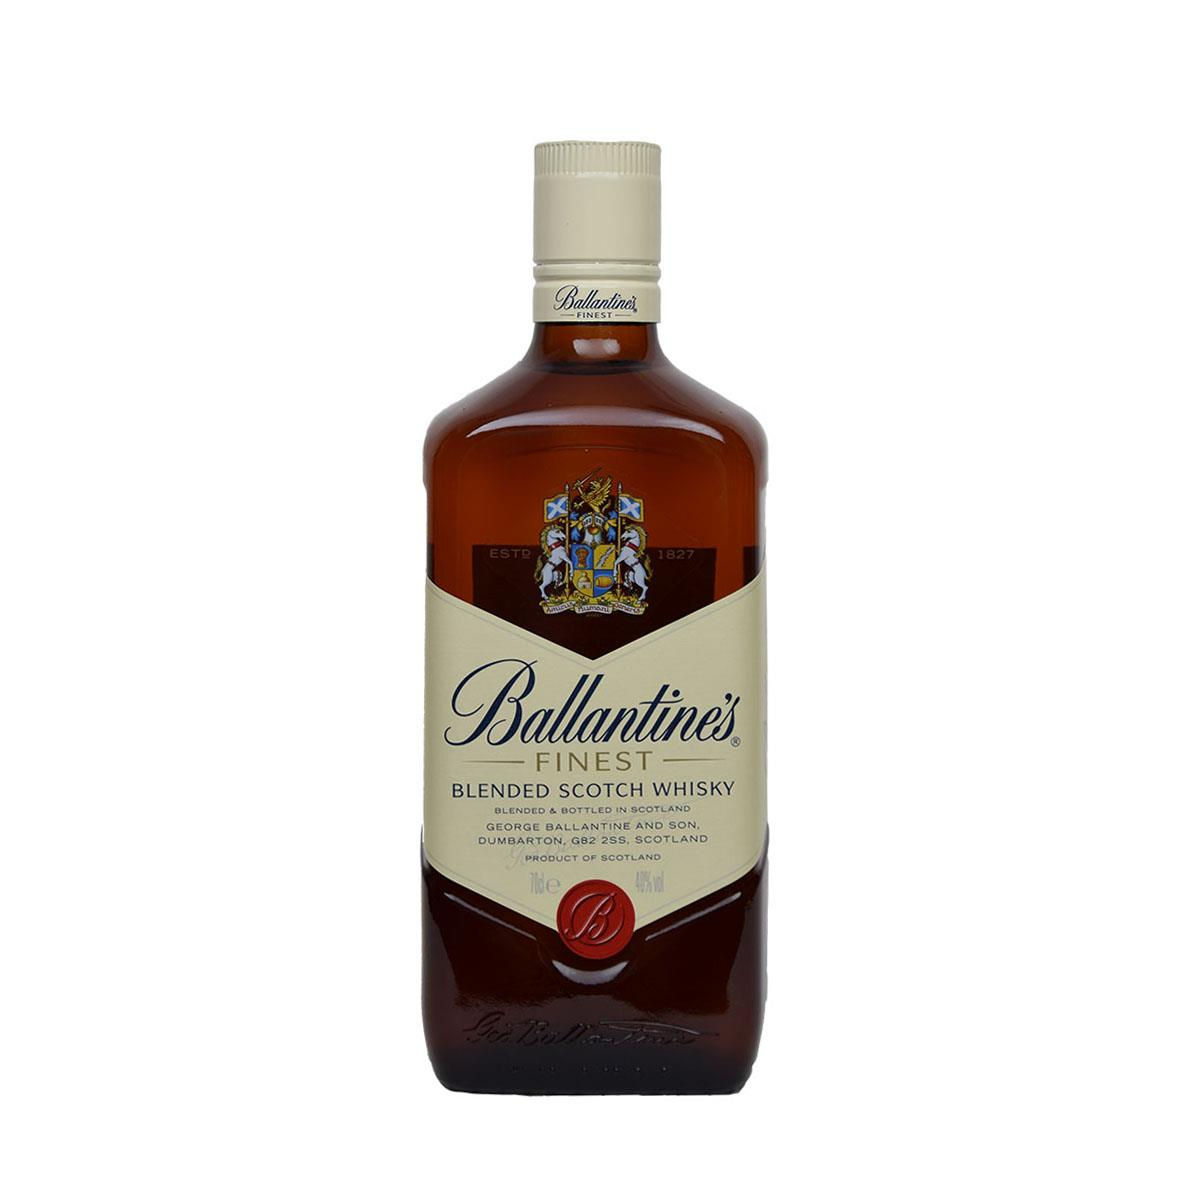 Ballantines Finest 700ml